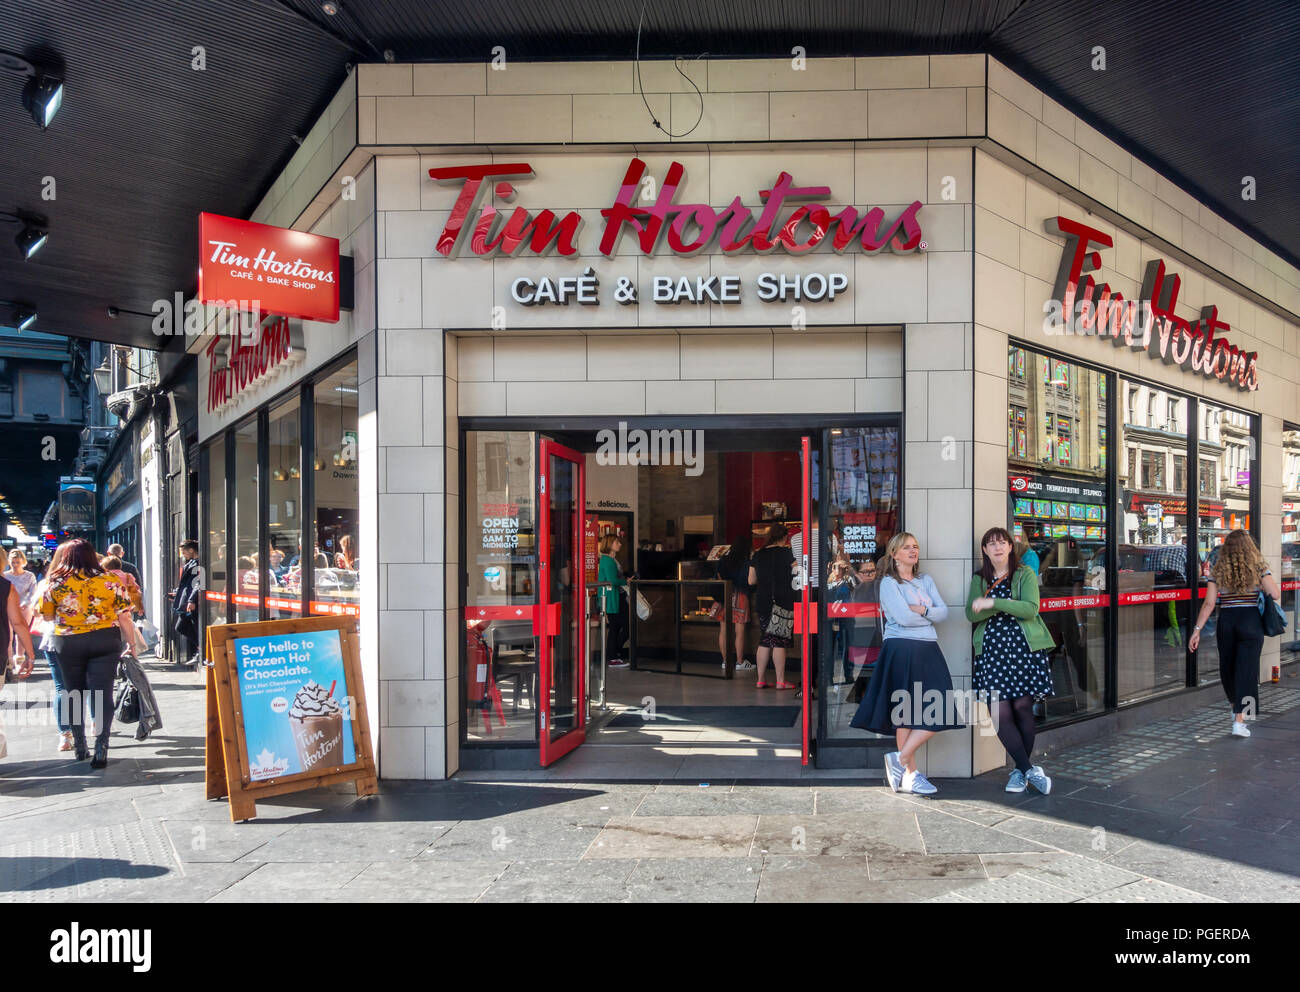 Tim Hortons cafe and bake shop in central Glasgow with customers inside the shop and pedestrians / shoppers on the pavement outside. Scotland, UK. - Stock Image